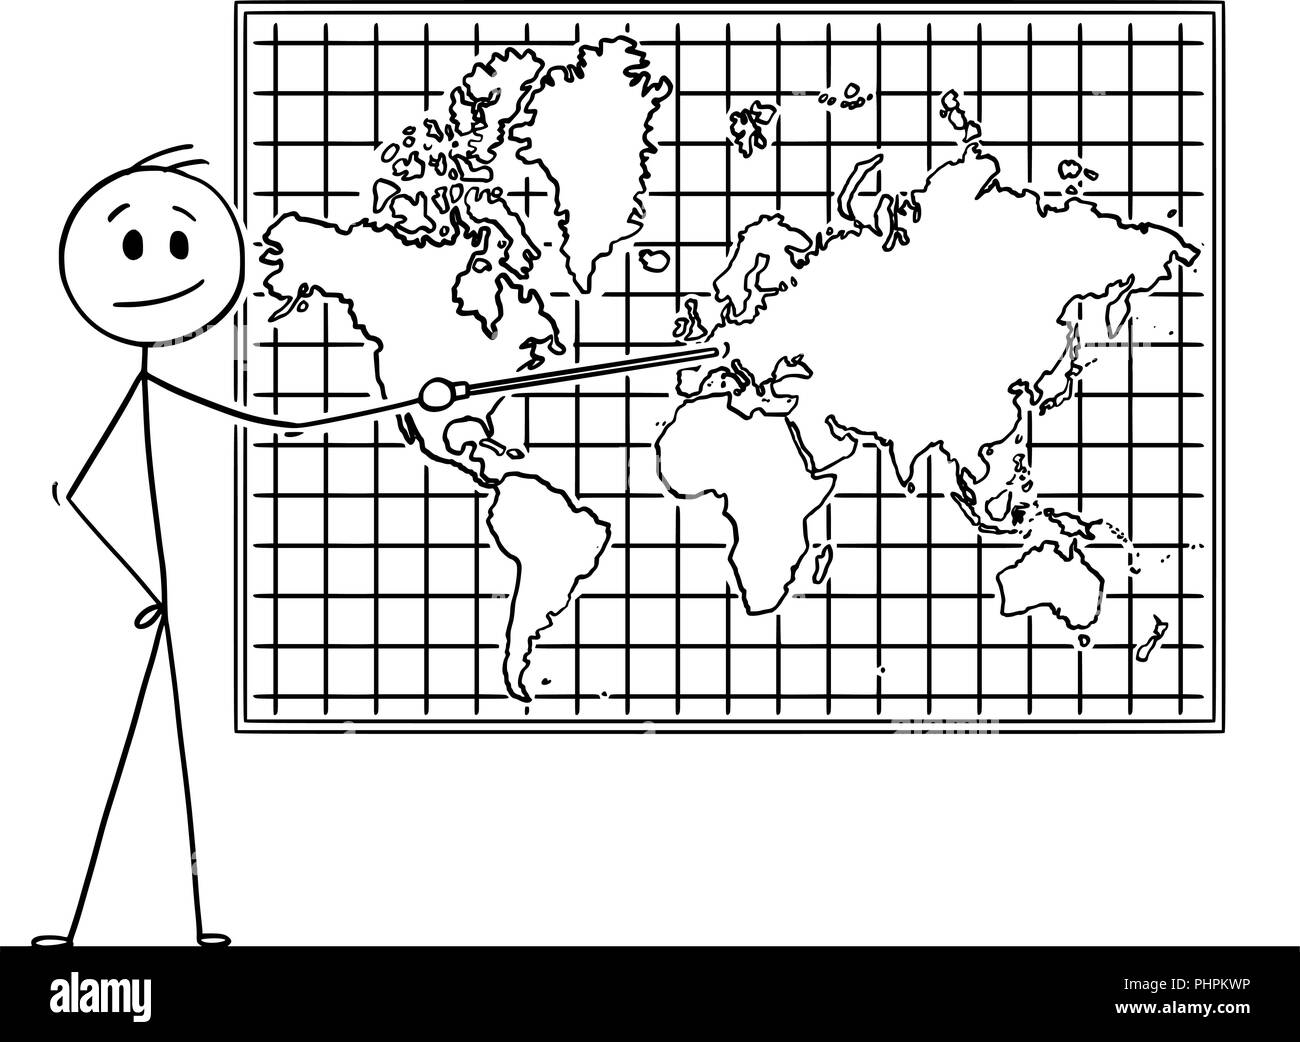 Cartoon of Man Pointing at Europe Continent on Wall World Map - Stock Image